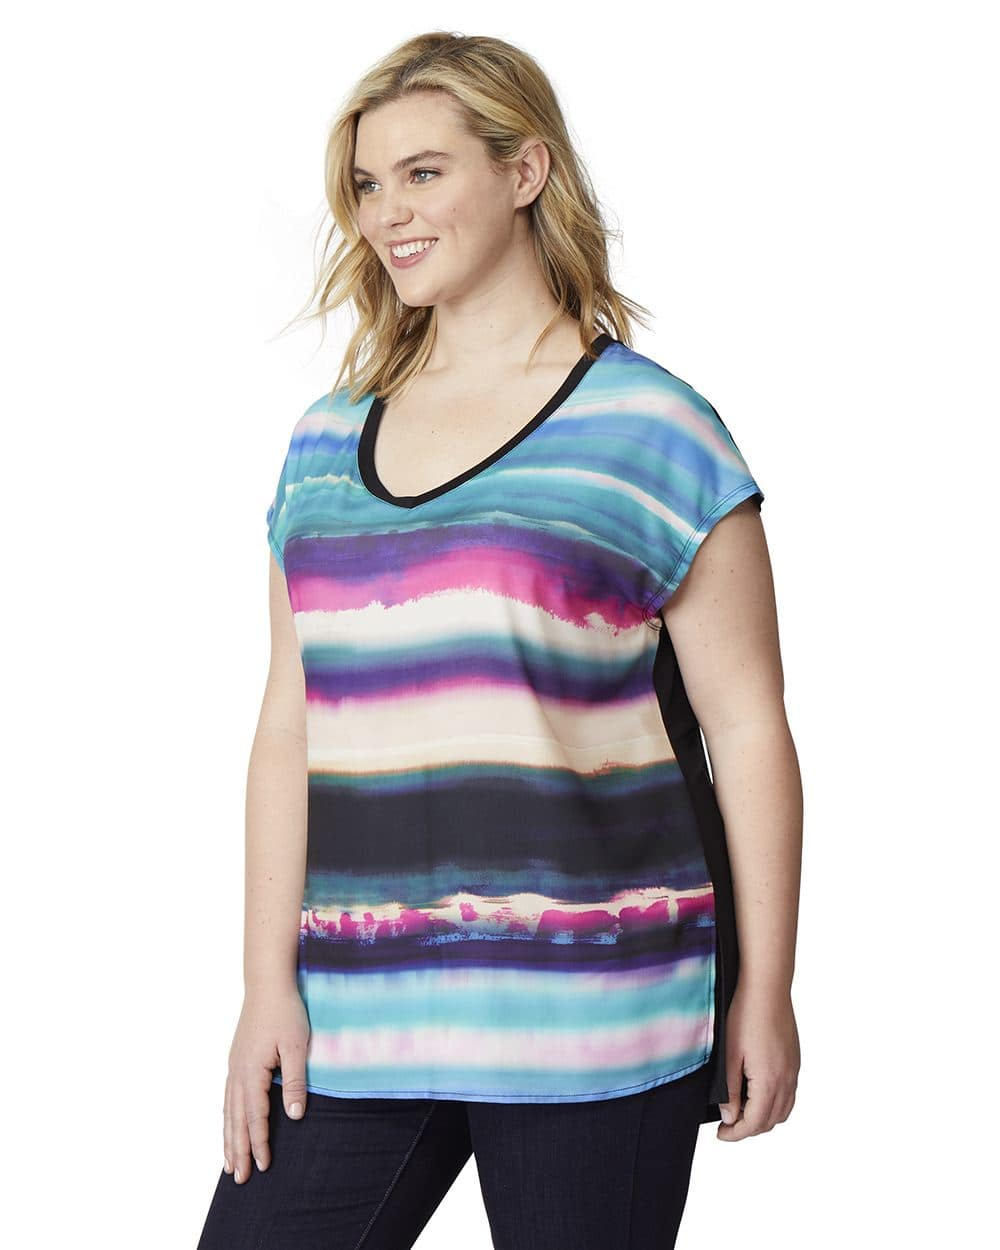 1000x1250 Rebel Wilson Mixed Fabric Watercolor Sublimation T Shirt